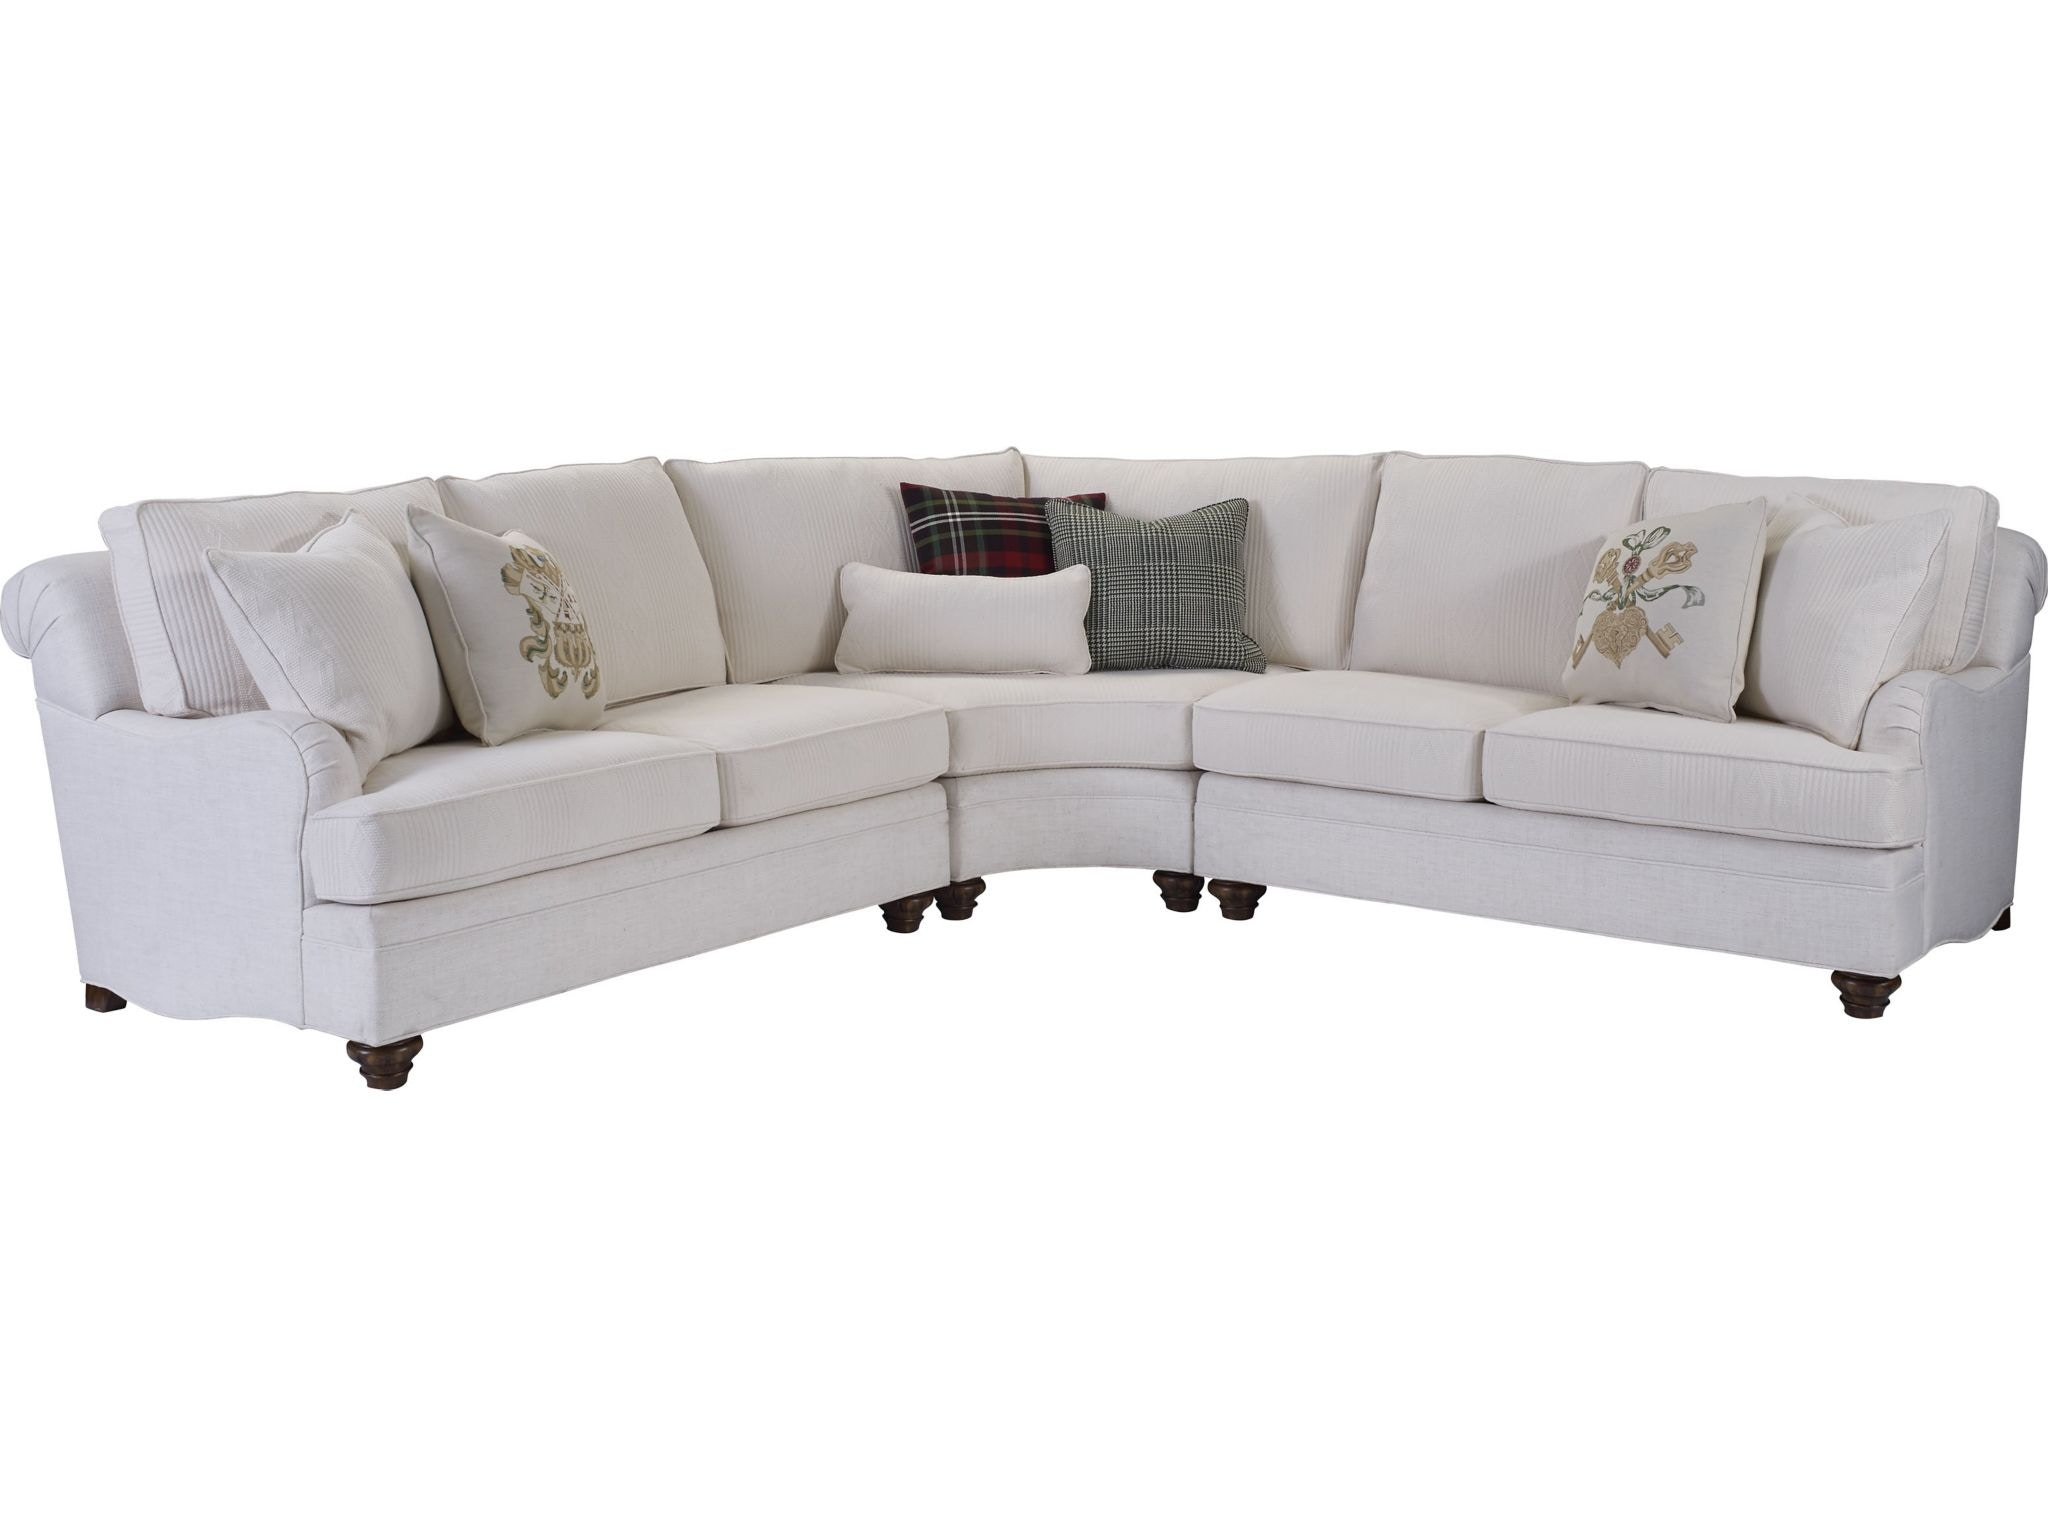 Thomasville. 2530 A24  sc 1 st  Kamin Furniture : thomasville chaise lounge - Sectionals, Sofas & Couches